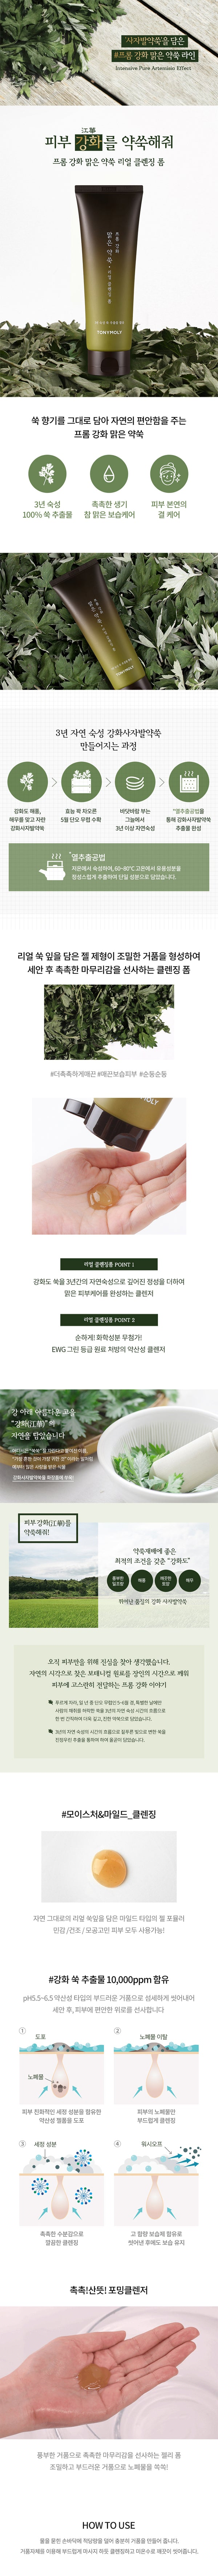 From Ganghwa: Contains Artemisia Real Cleansing Foam